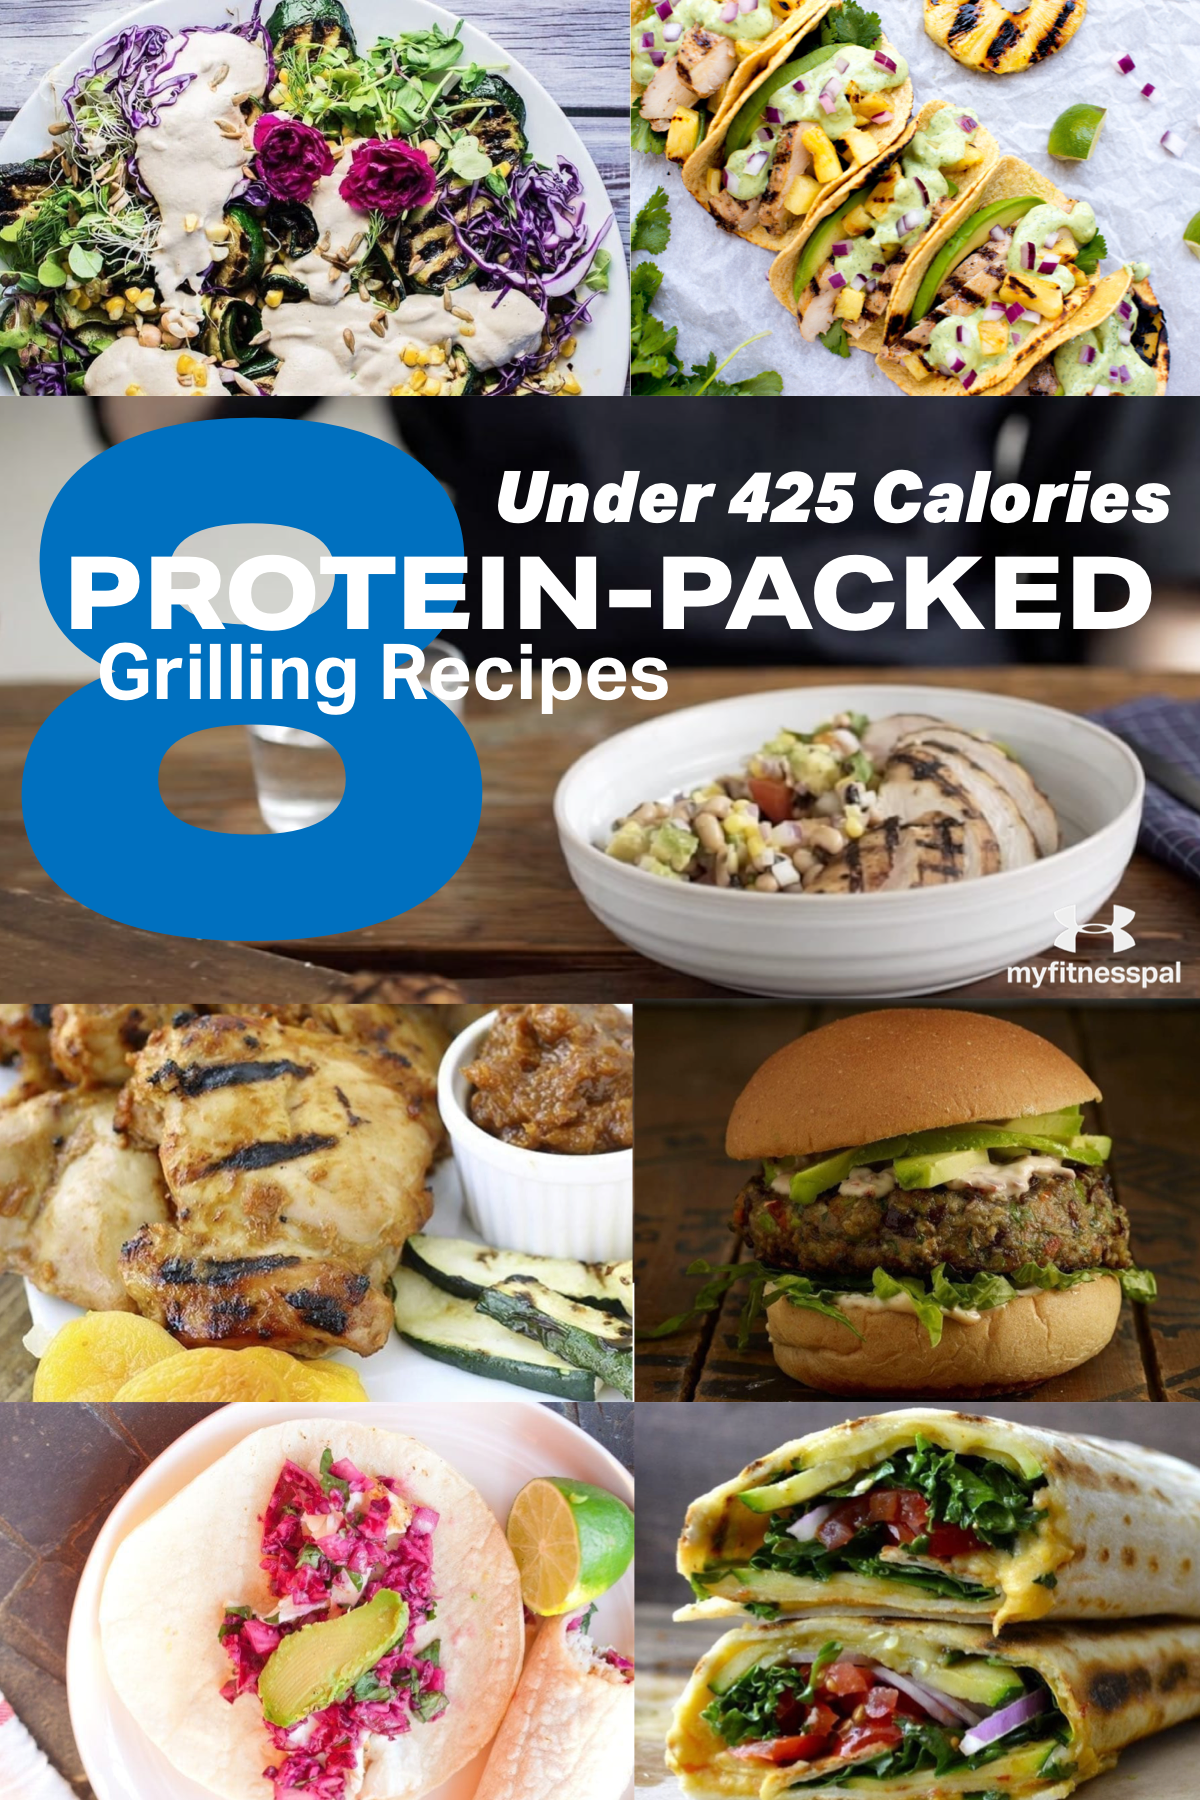 8 ProteinPacked Grilling Recipes Under 425 Calories